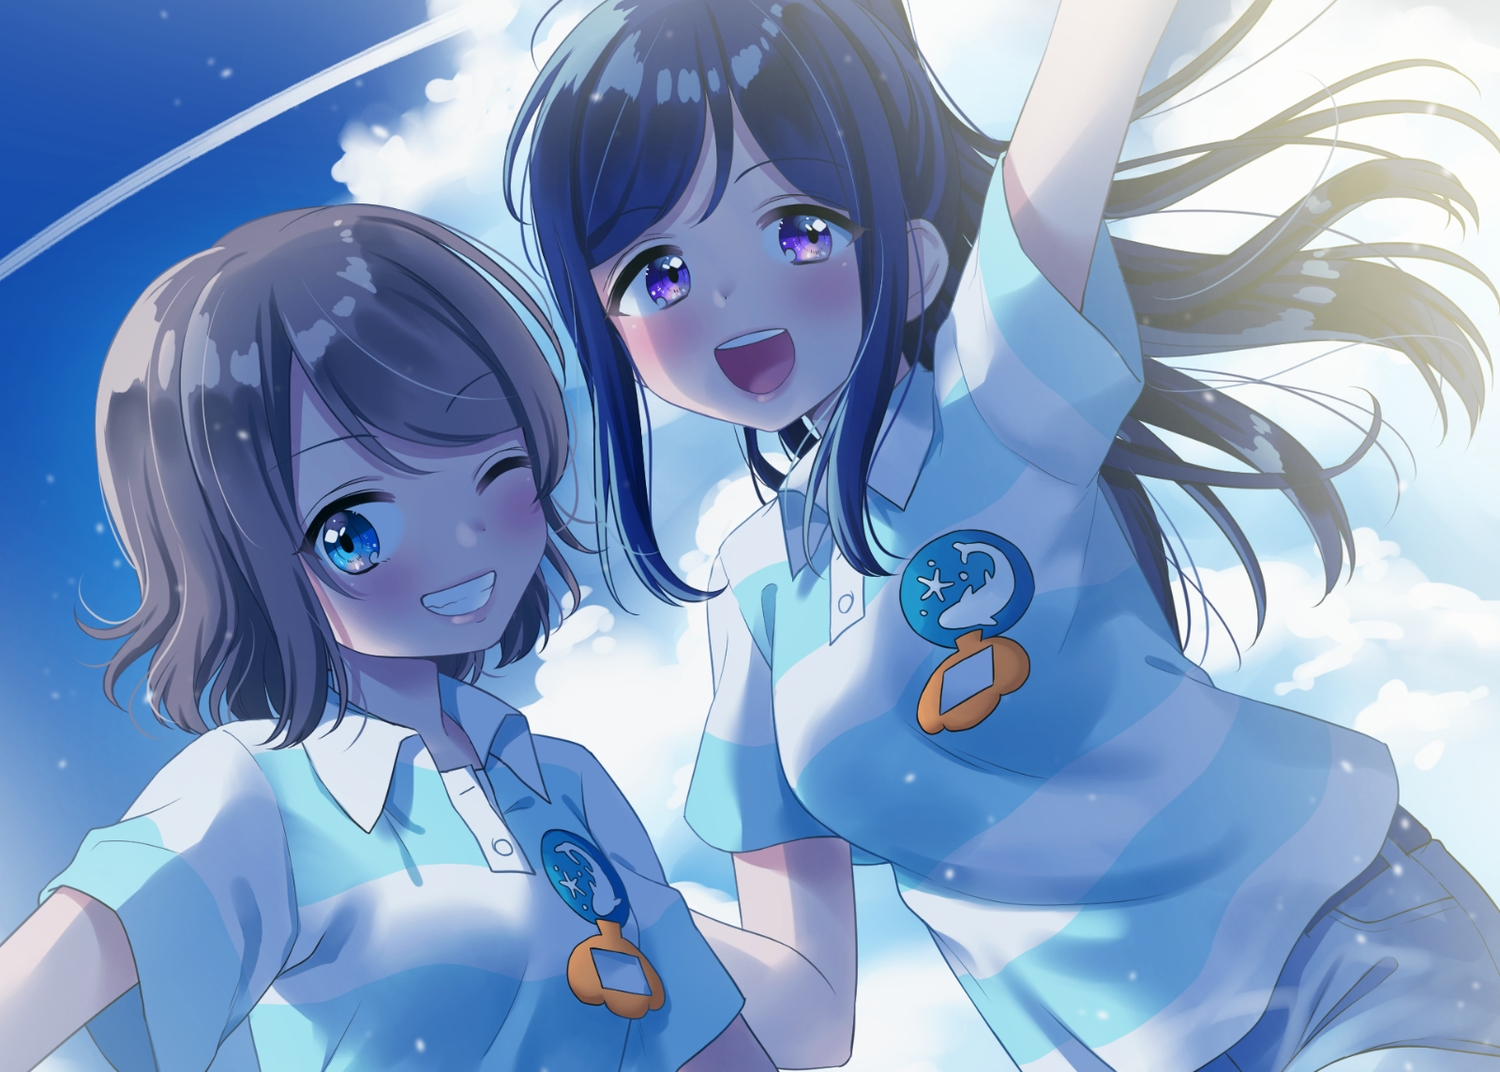 2girls aqua_eyes blue_hair brown_hair close clouds hina_(hinalovesugita) long_hair love_live!_school_idol_project love_live!_sunshine!! matsuura_kanan ponytail short_hair shorts sky uniform watanabe_you wink